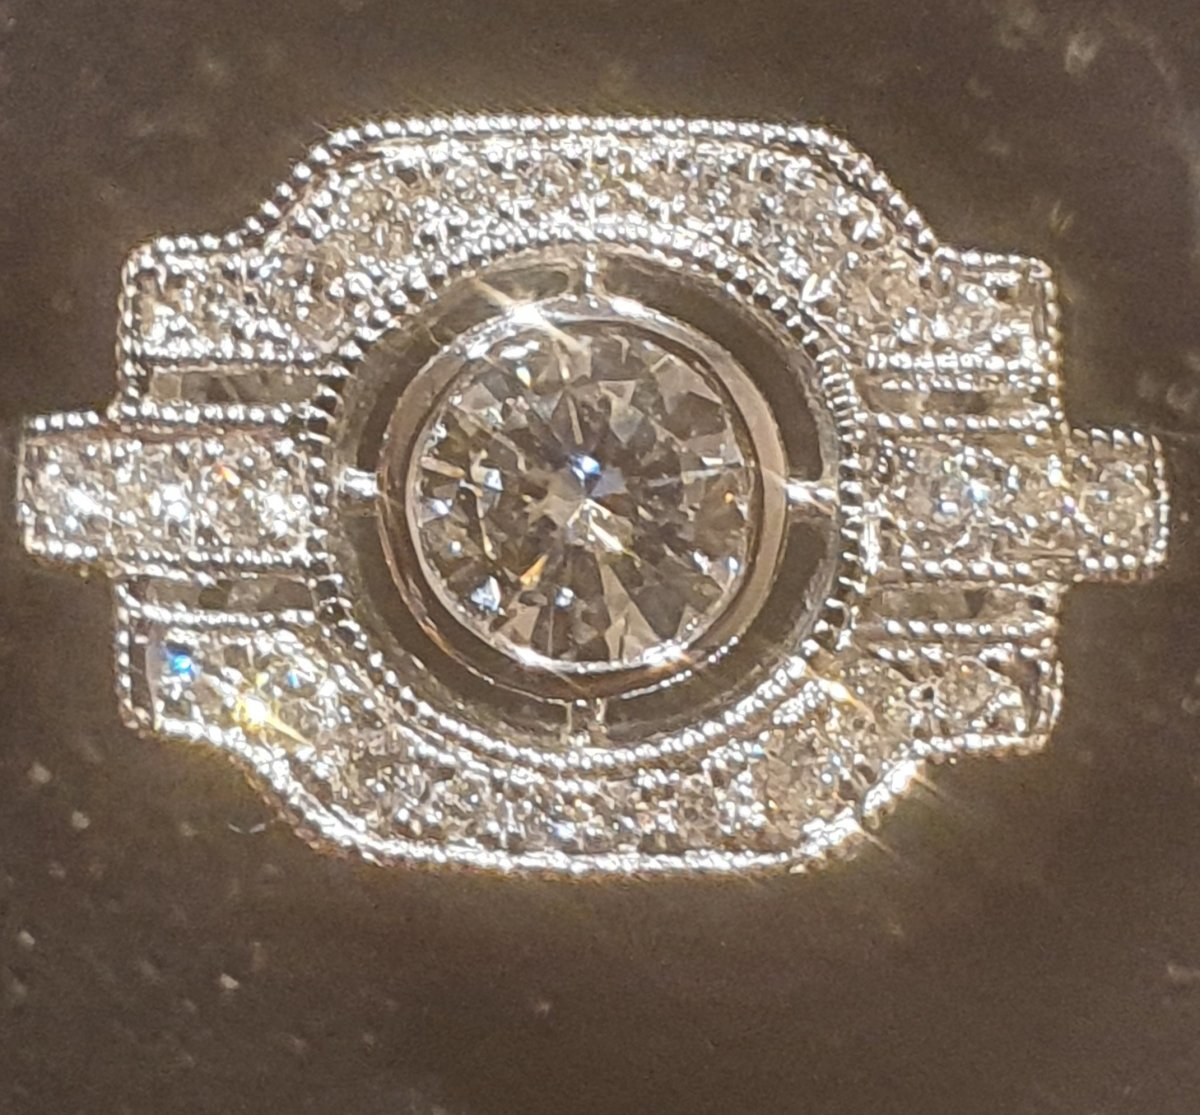 18ct White Gold Ring Set With A Diamond Surrounded By A Paving